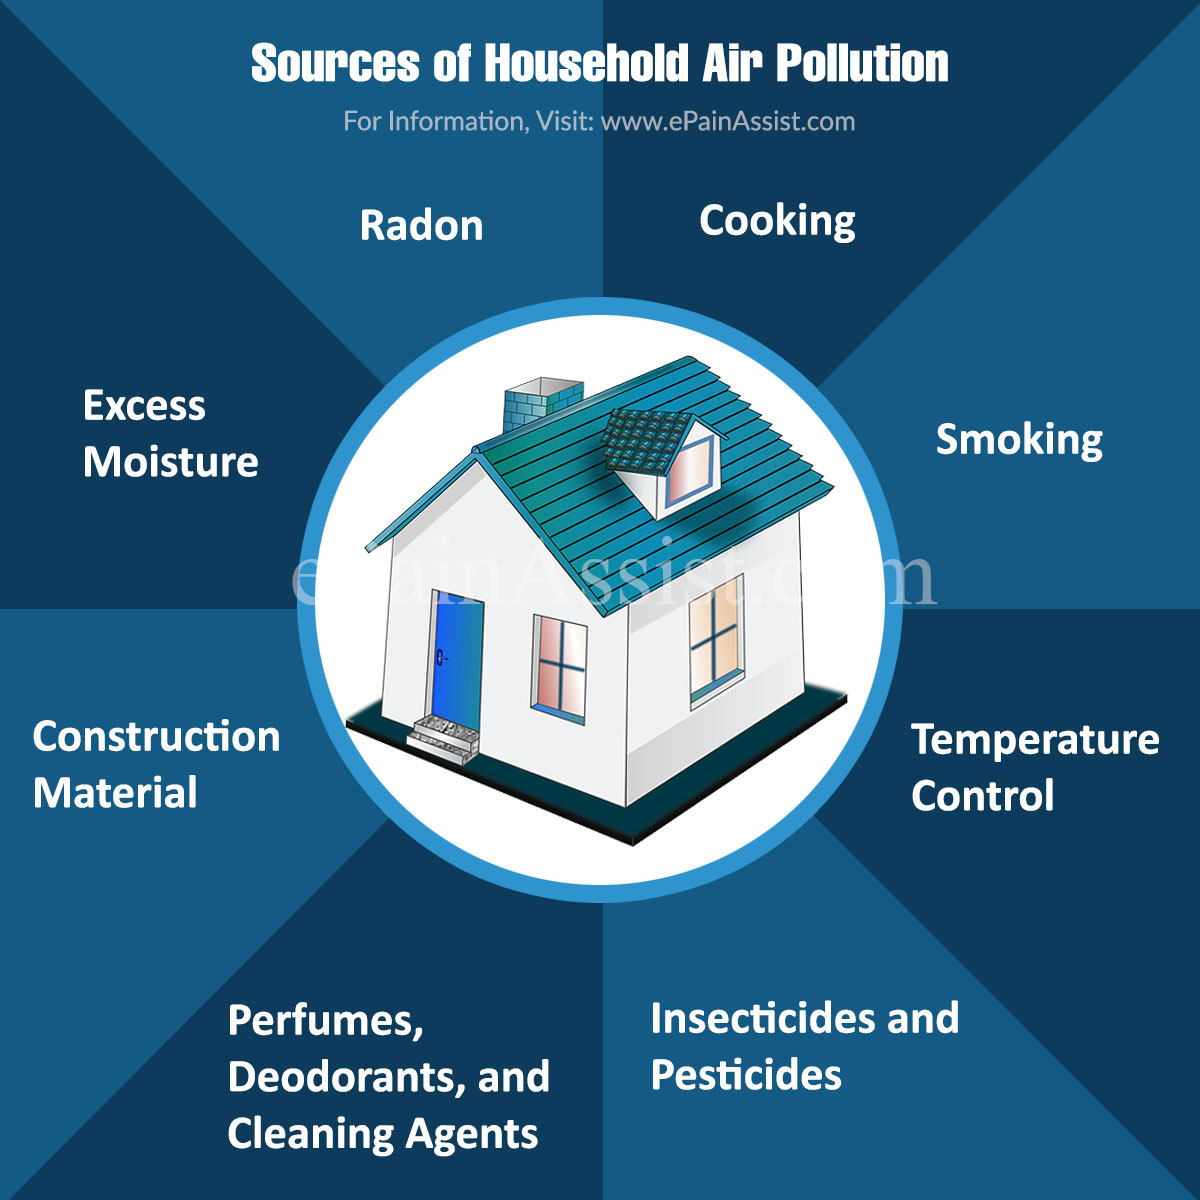 Sources of Household Air Pollution & its Health Effects, Strategies to Deal With it, Risks